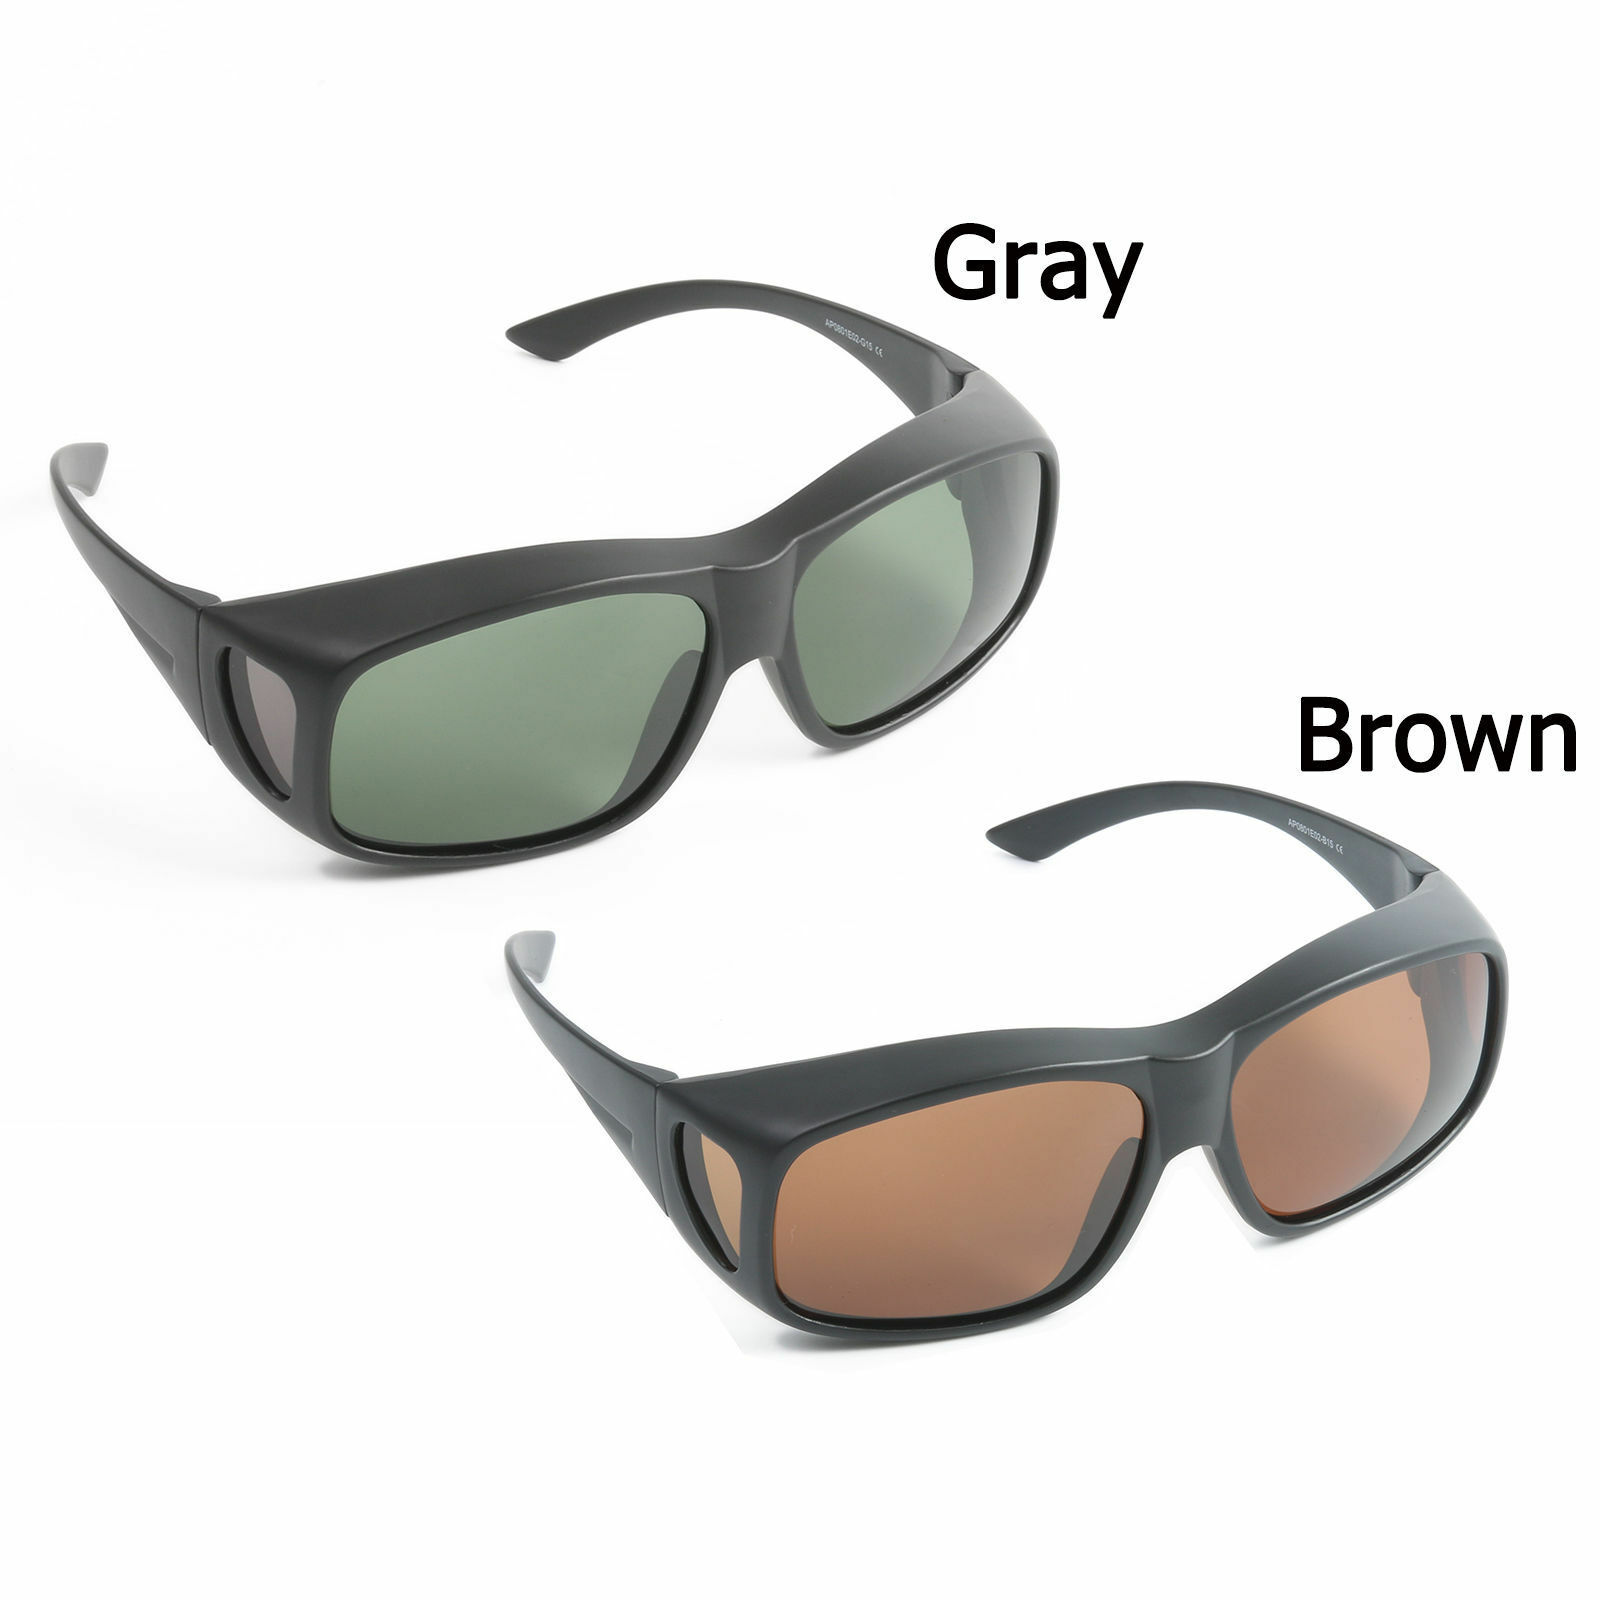 5ee57a79f8 Details about Maxcatch Fly Fishing Polarized Sunglasses Eyewear Lense Cover  Fit Over UV400